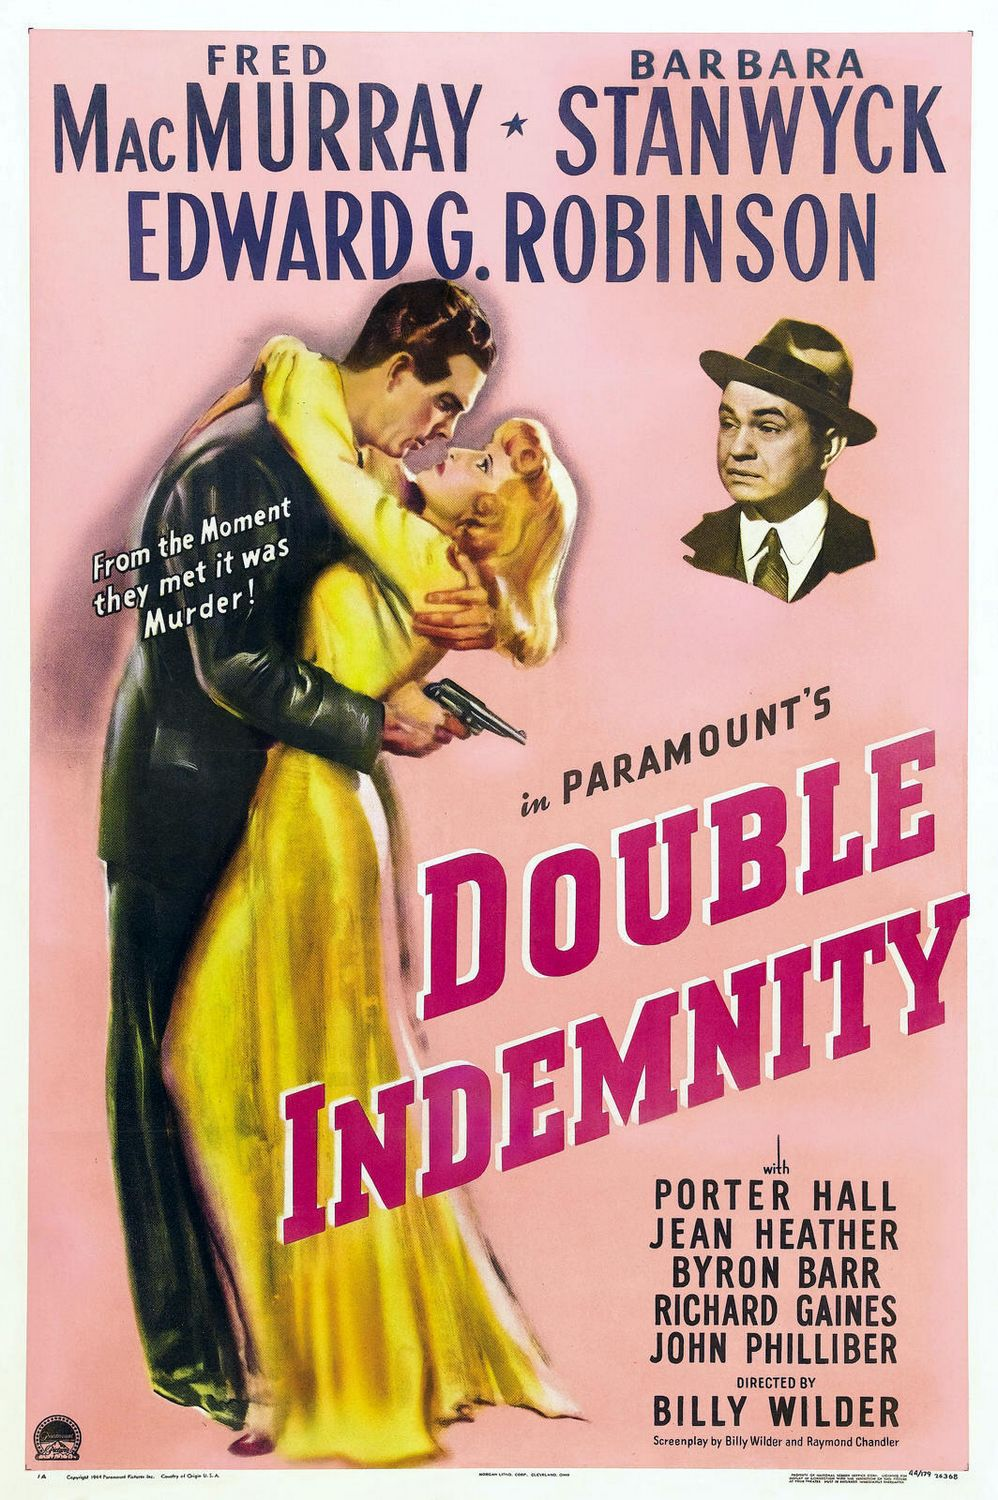 essays on double indemnity film noir An example of film noir: double indemnity the femme fatale the femme fatale – a film noir studies essay film noir studies 1 jan 2008 web 9 nov 2014.